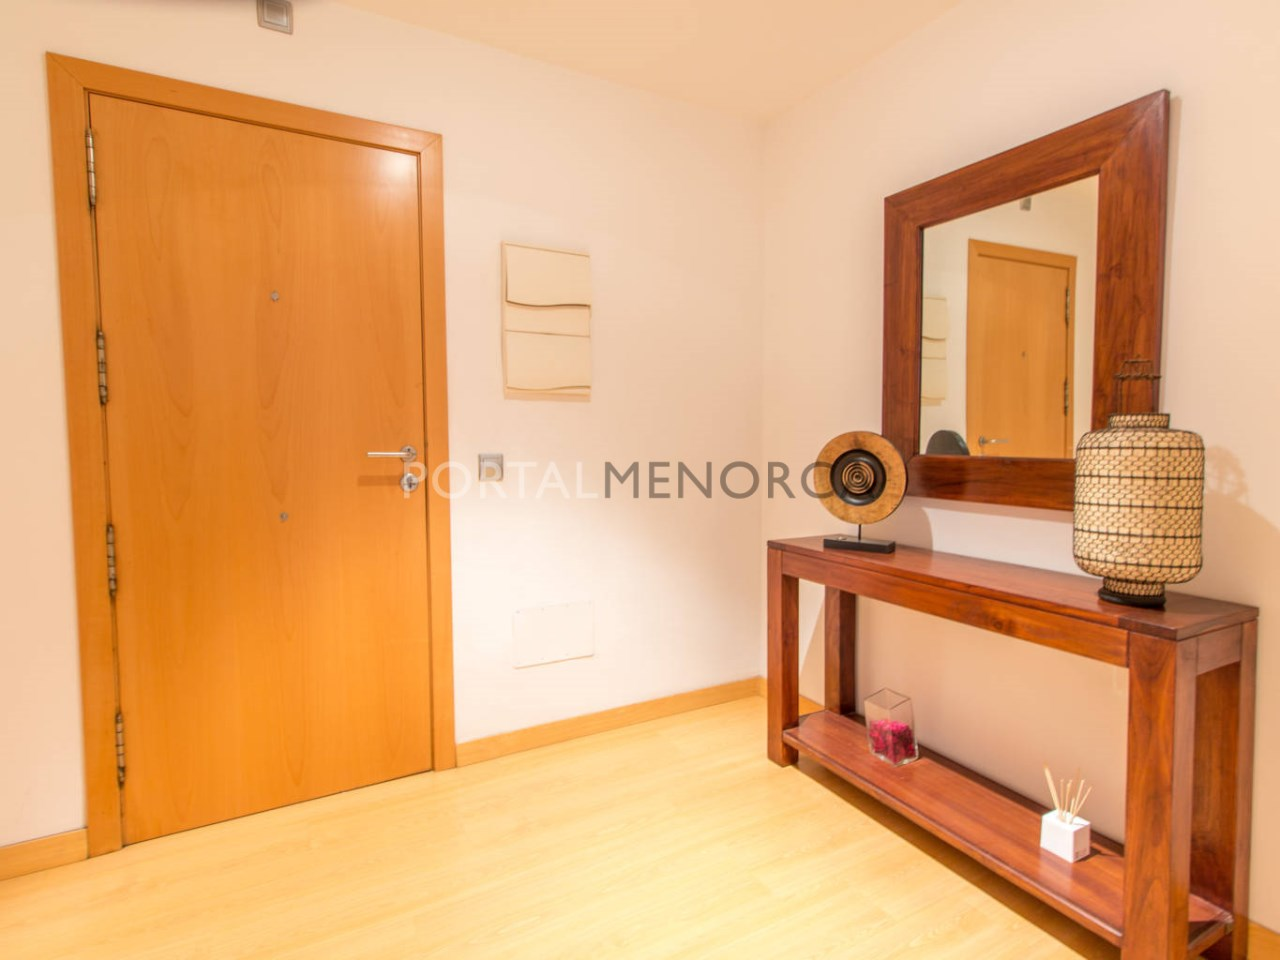 Spacious apartment with terrace for sale in Menorca\n